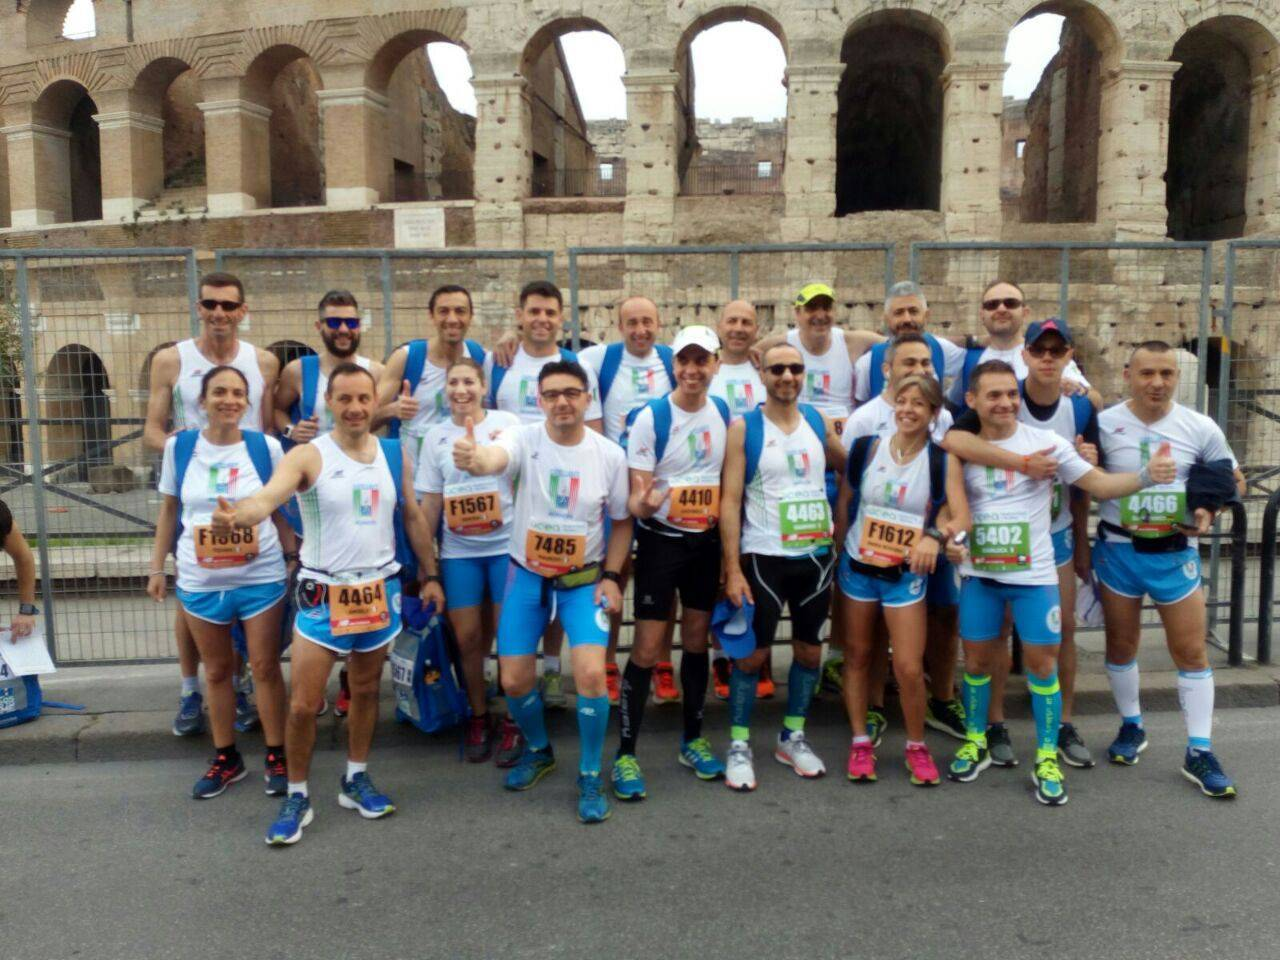 I 'Castellabate Runners' scalano la classifica della 23^ Maratona di Roma